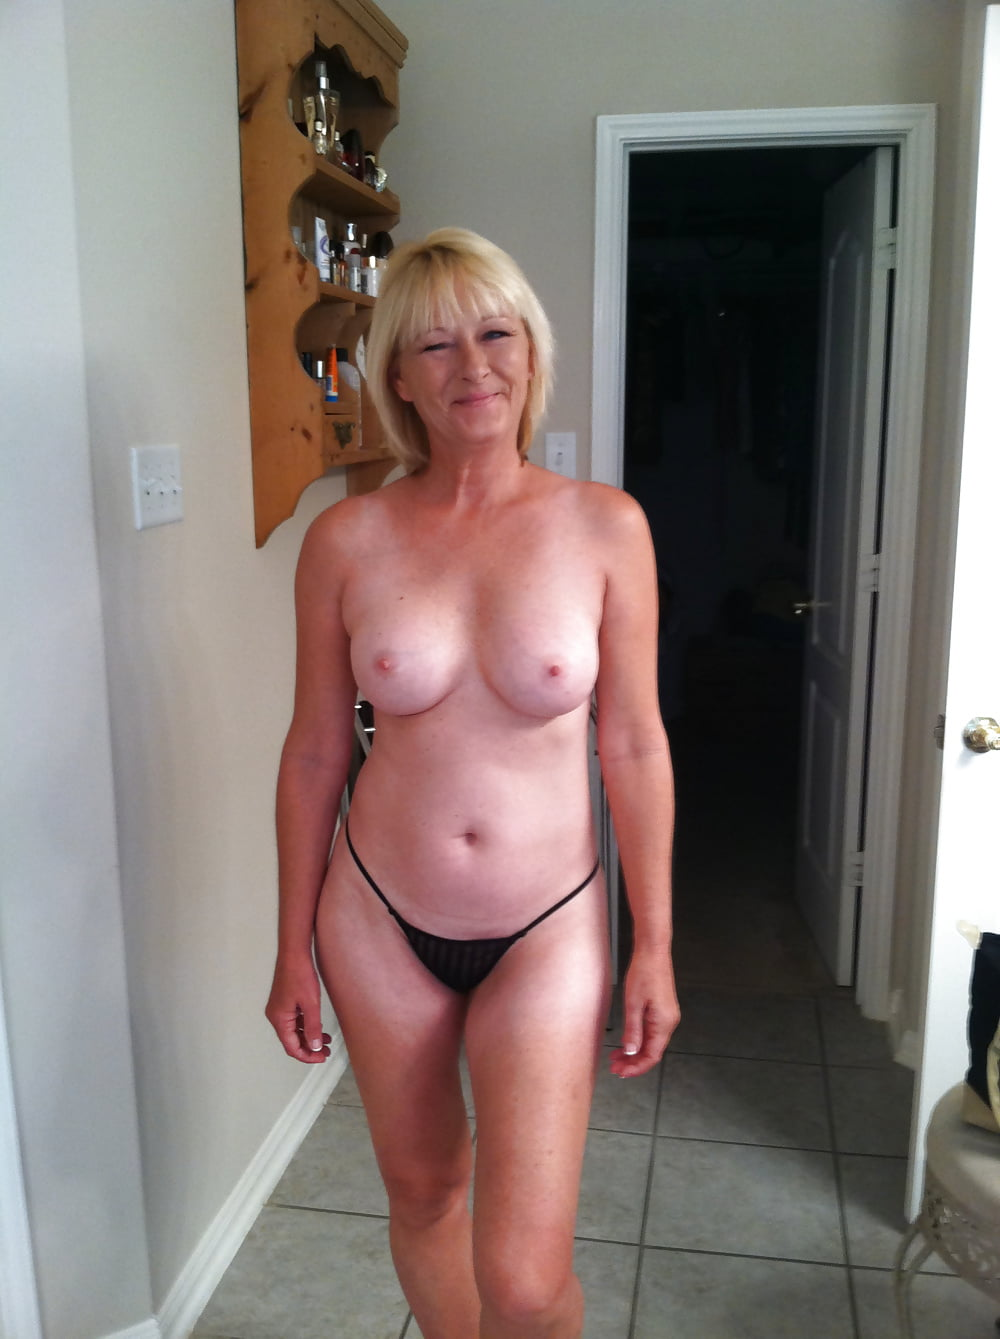 Fucked average mature woman topless cunt photo young